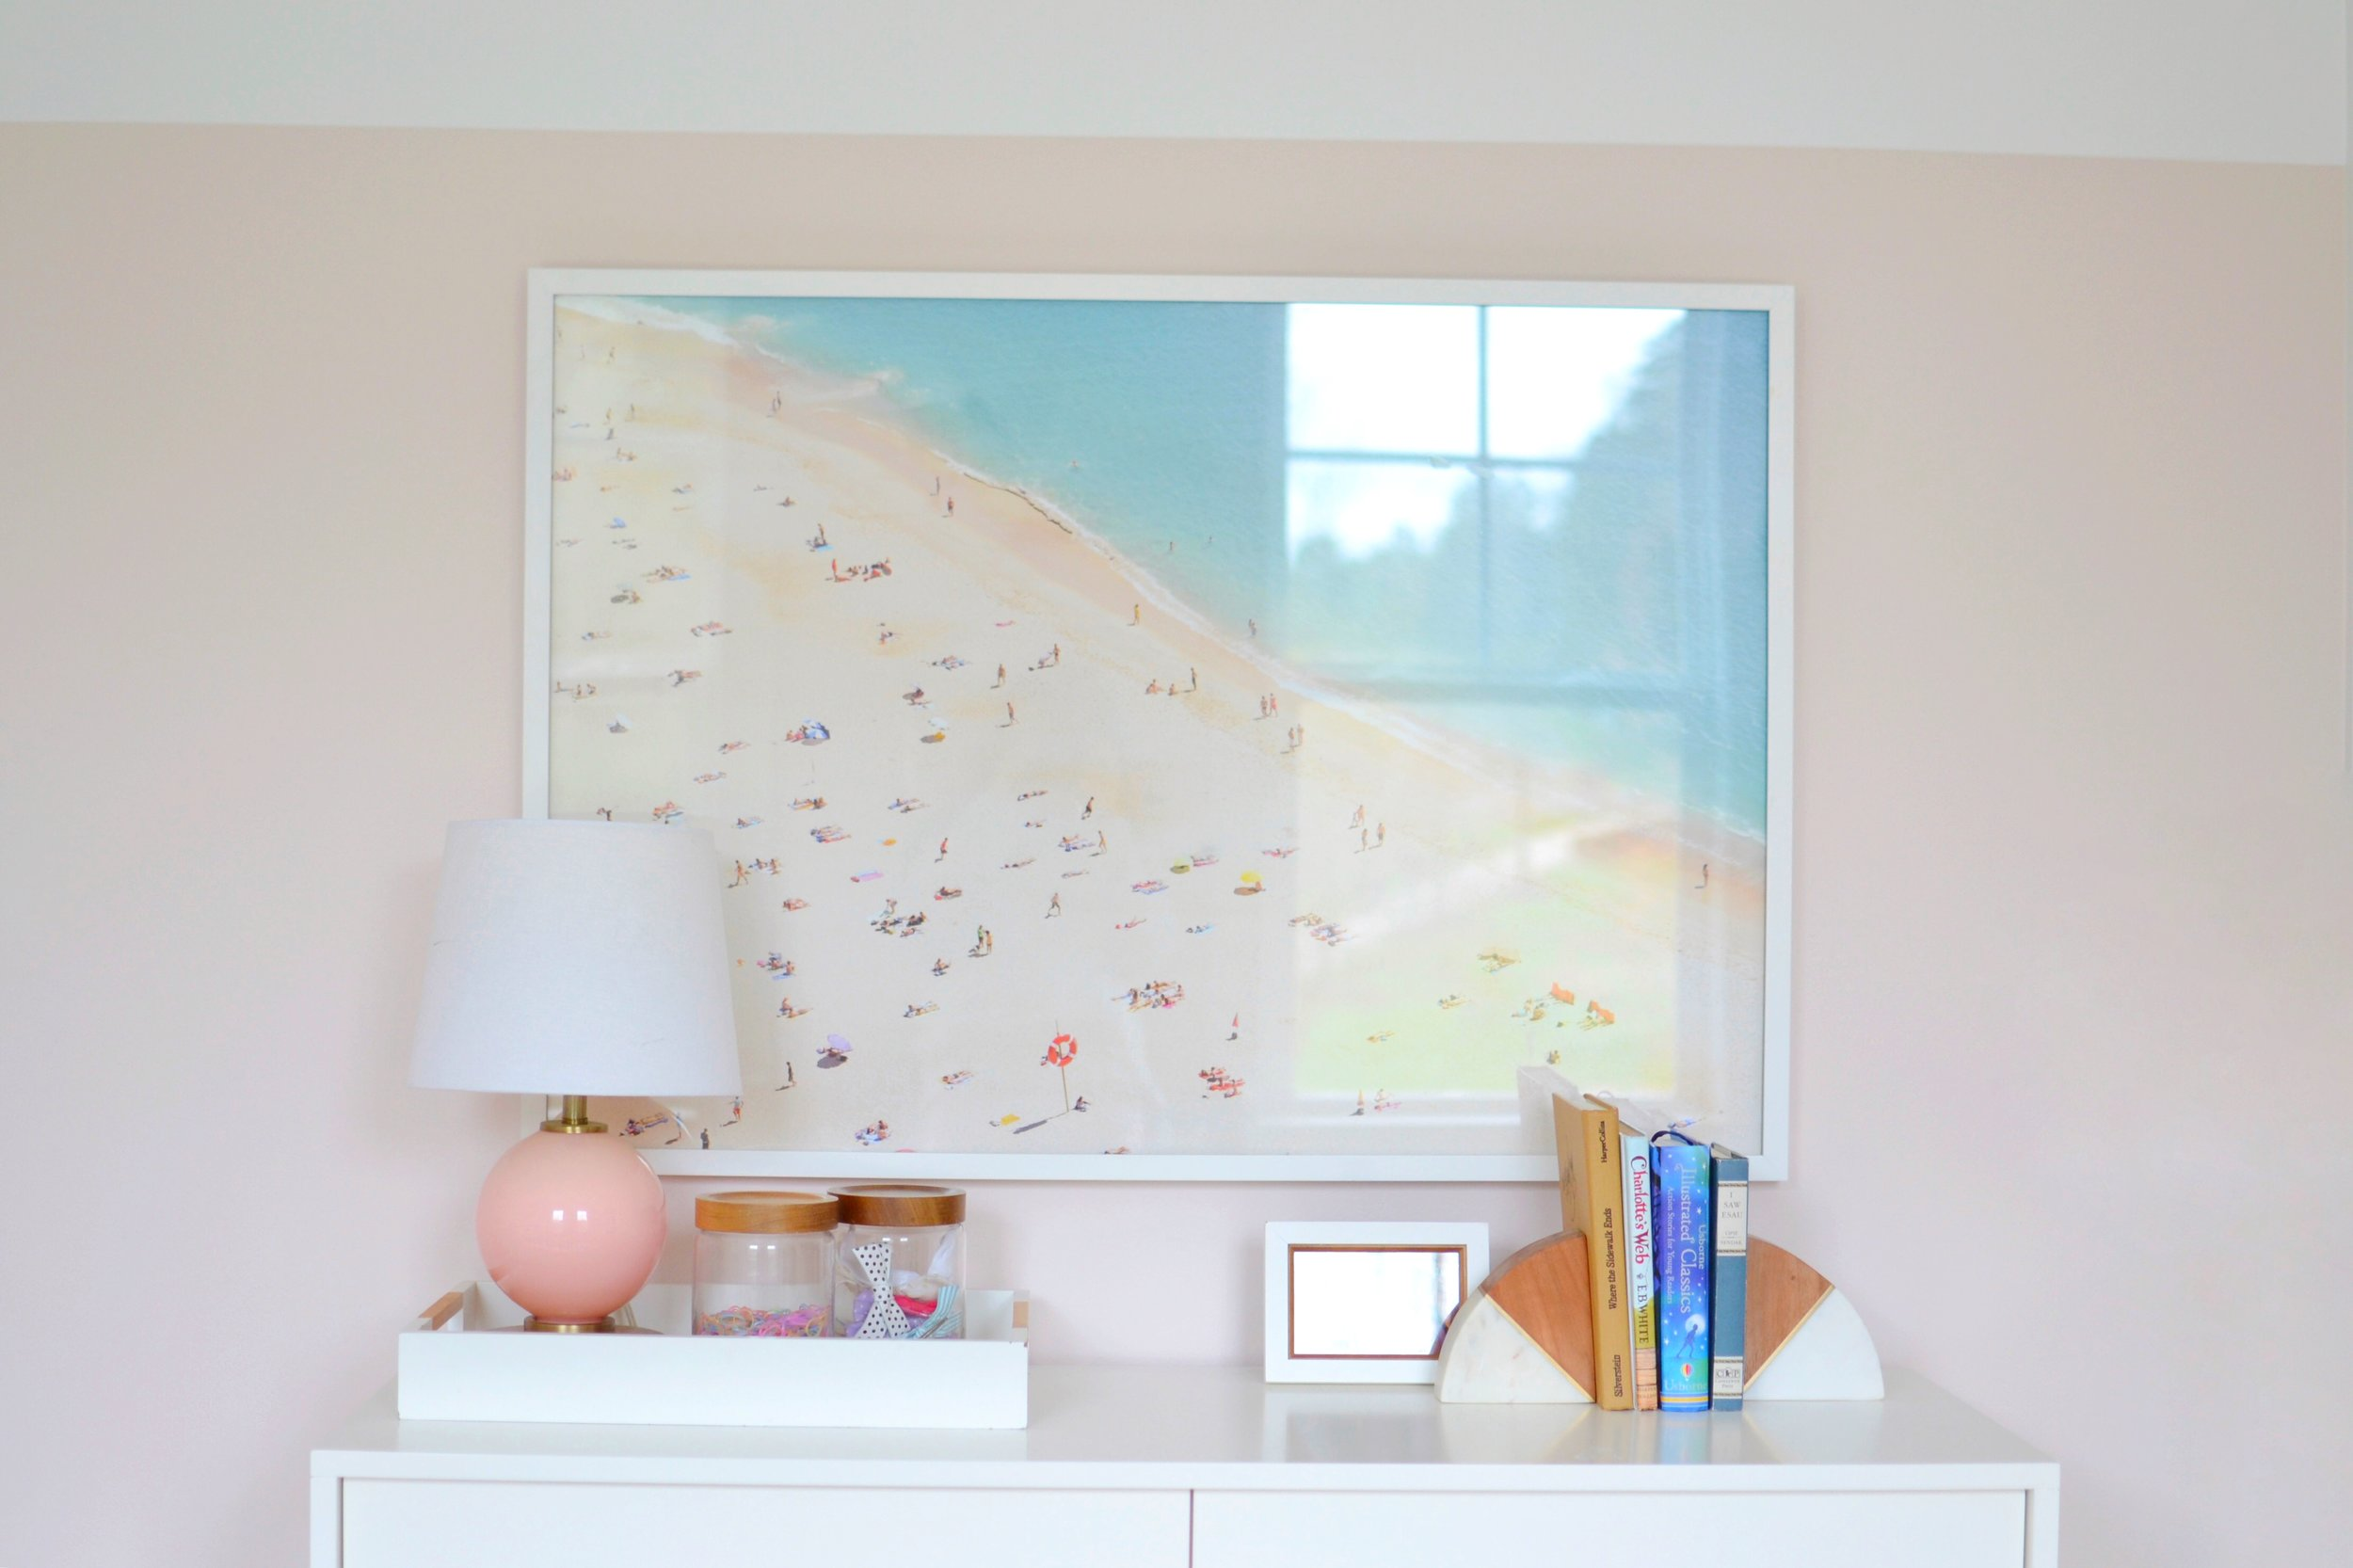 A DIY Gray Malin, or How to Make Affordable Oversized Beach Art!